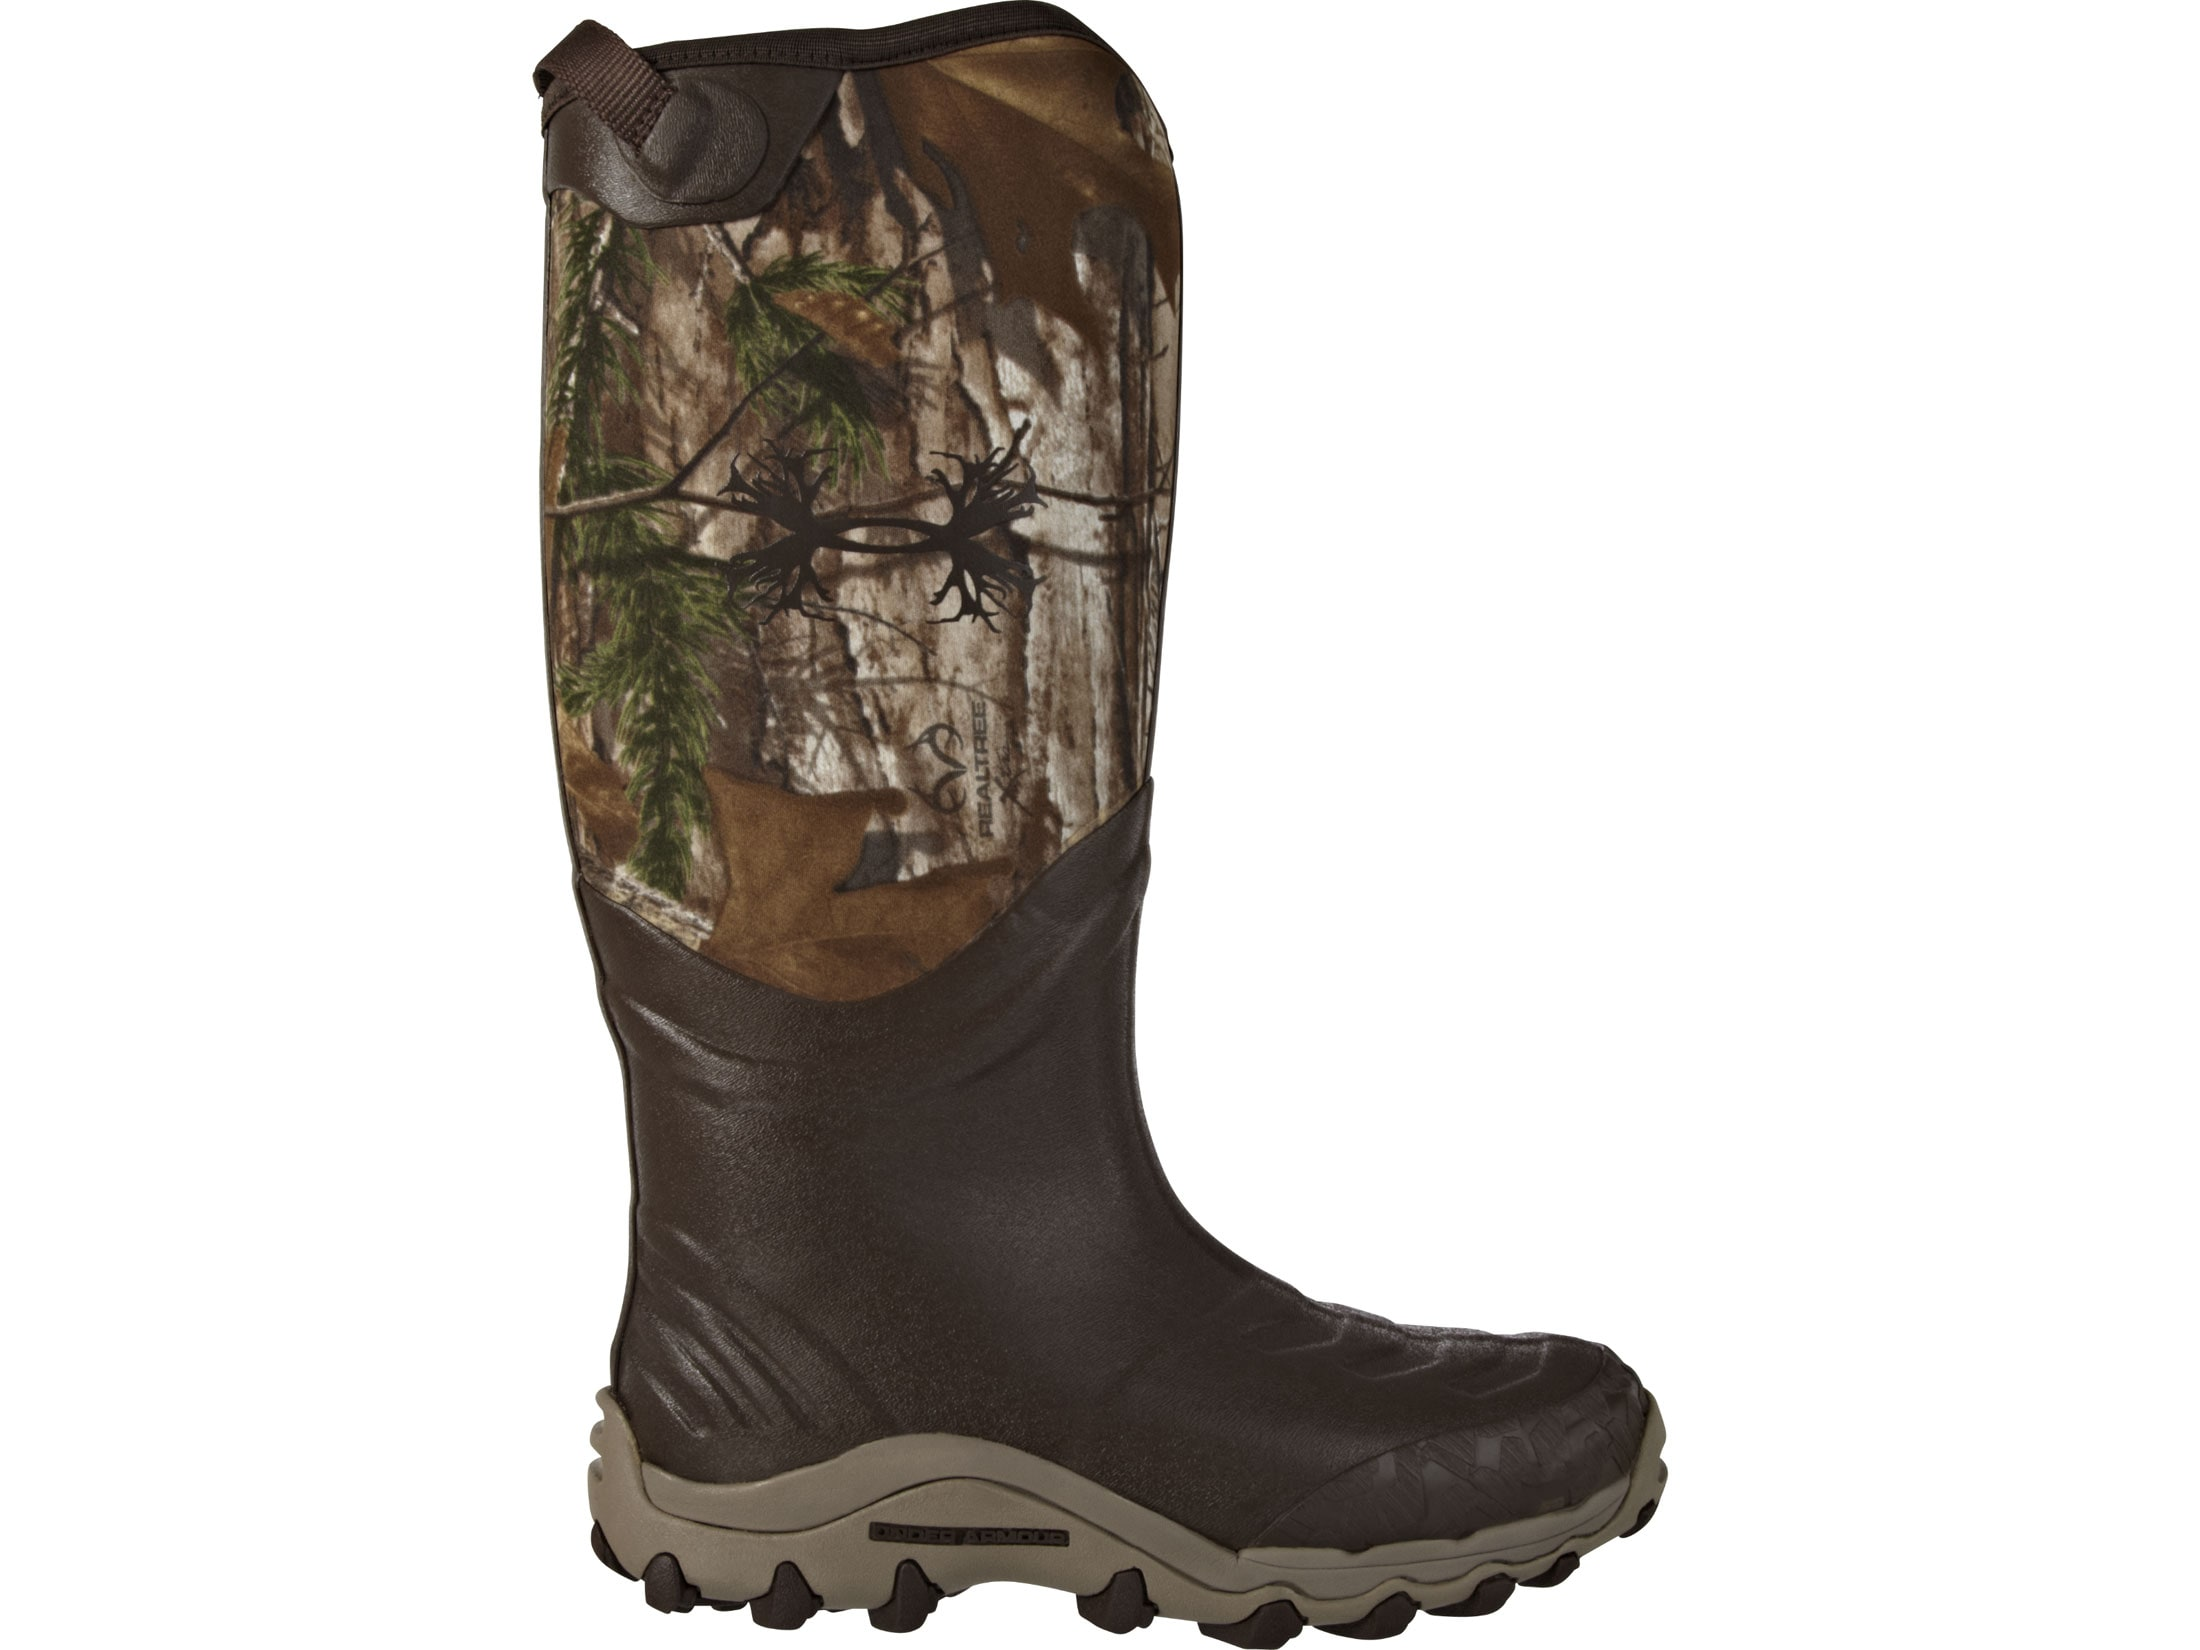 e9a80d845c8 Under Armour H.A.W. 16 Hunting Boots Rubber Neoprene Realtree Xtra